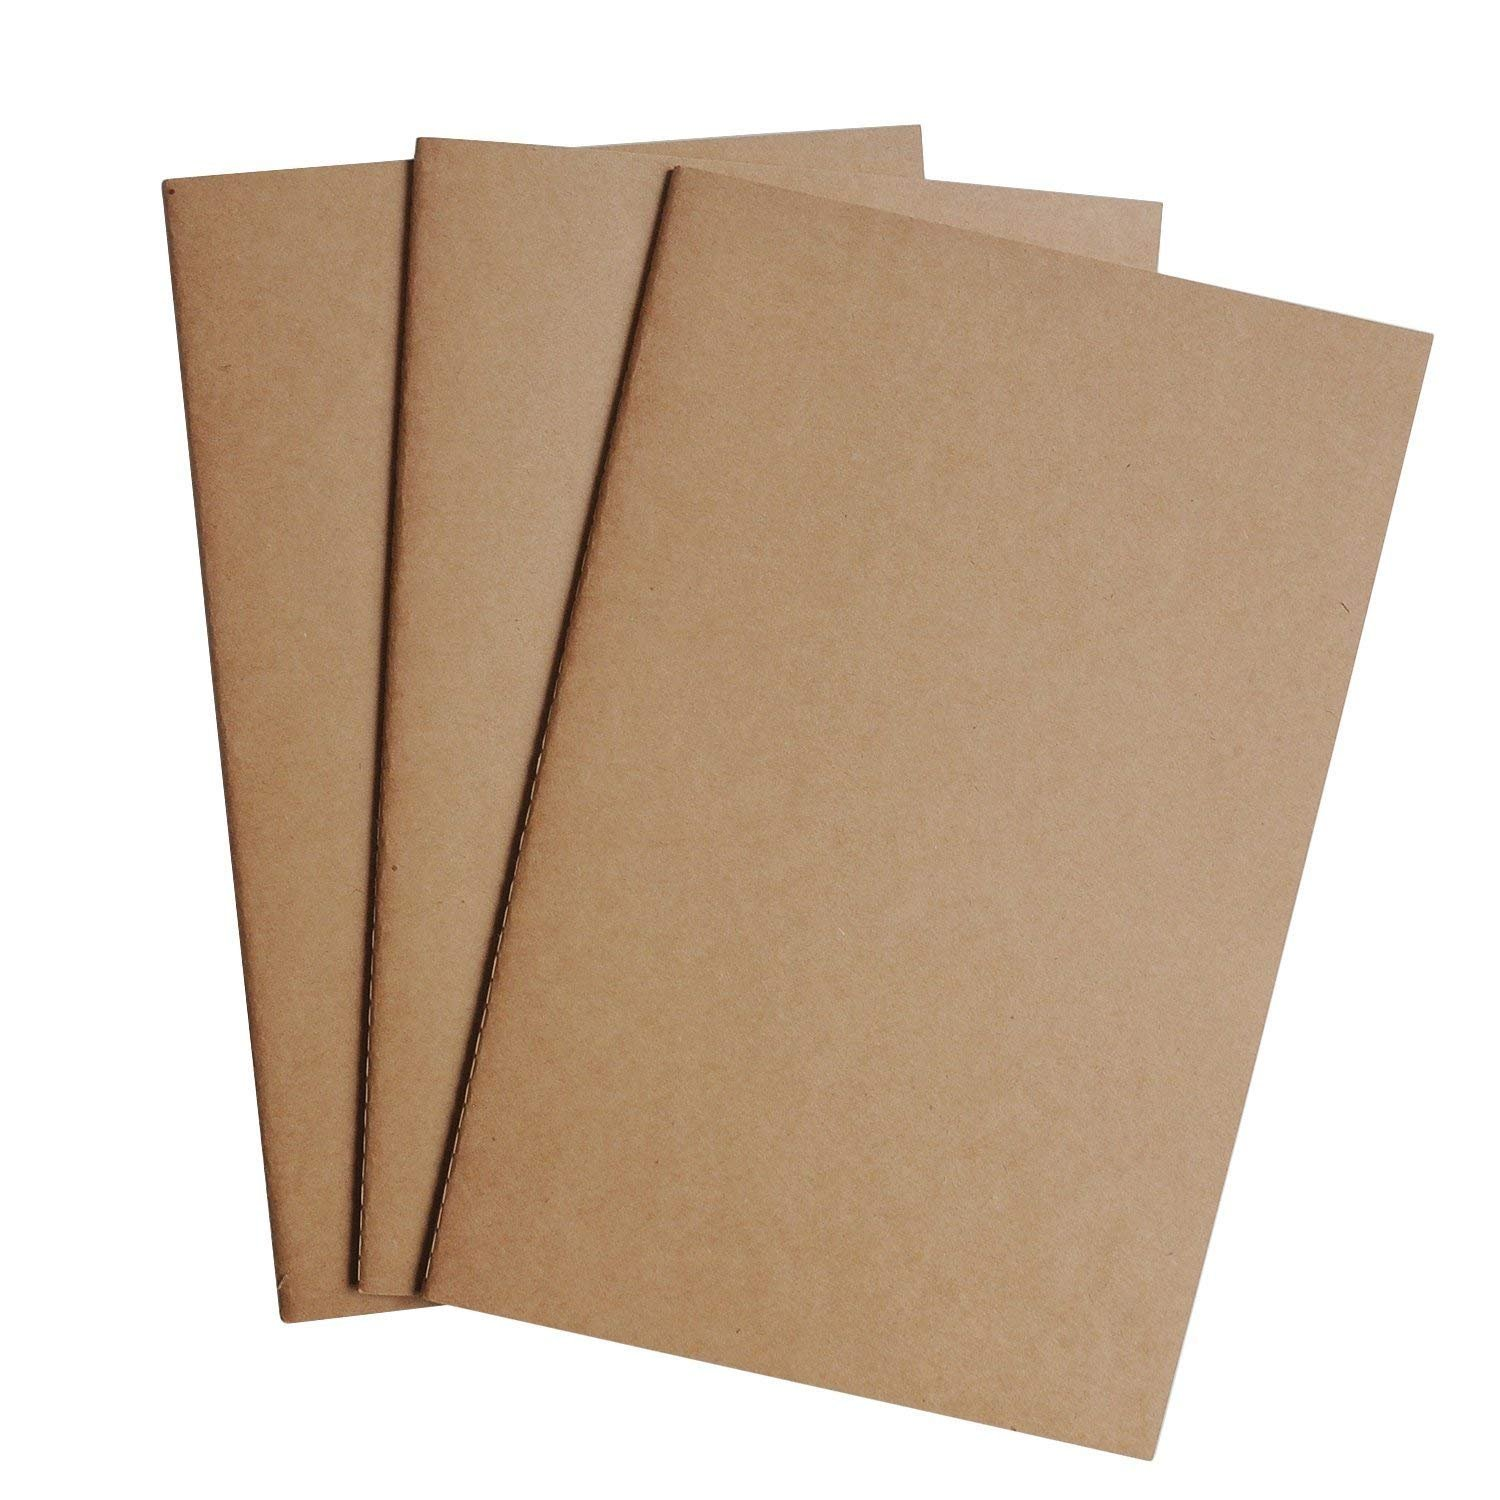 Traveler's Notebook Inserts - Large Lined Paper Journal Refill - Set of 3 Pack | for Large Refillable Leather Travel Journals, Notepads, Diary and Planners | 10.7 x 7 inch (27 x 18cm)